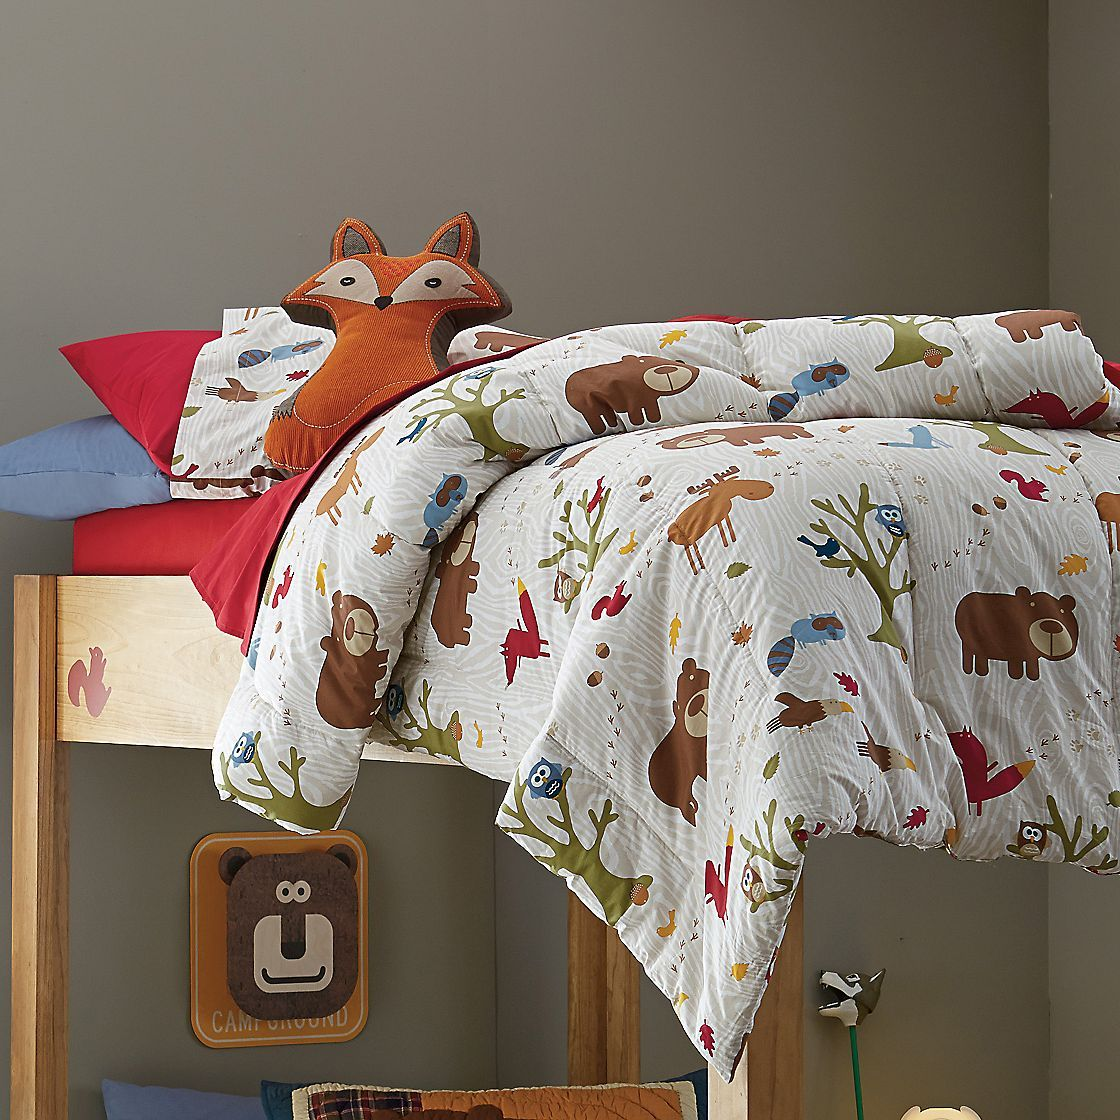 Amelia S Room Toddler Bedroom: Covered In Adorable Woodland Creatures, This Cozy Kids